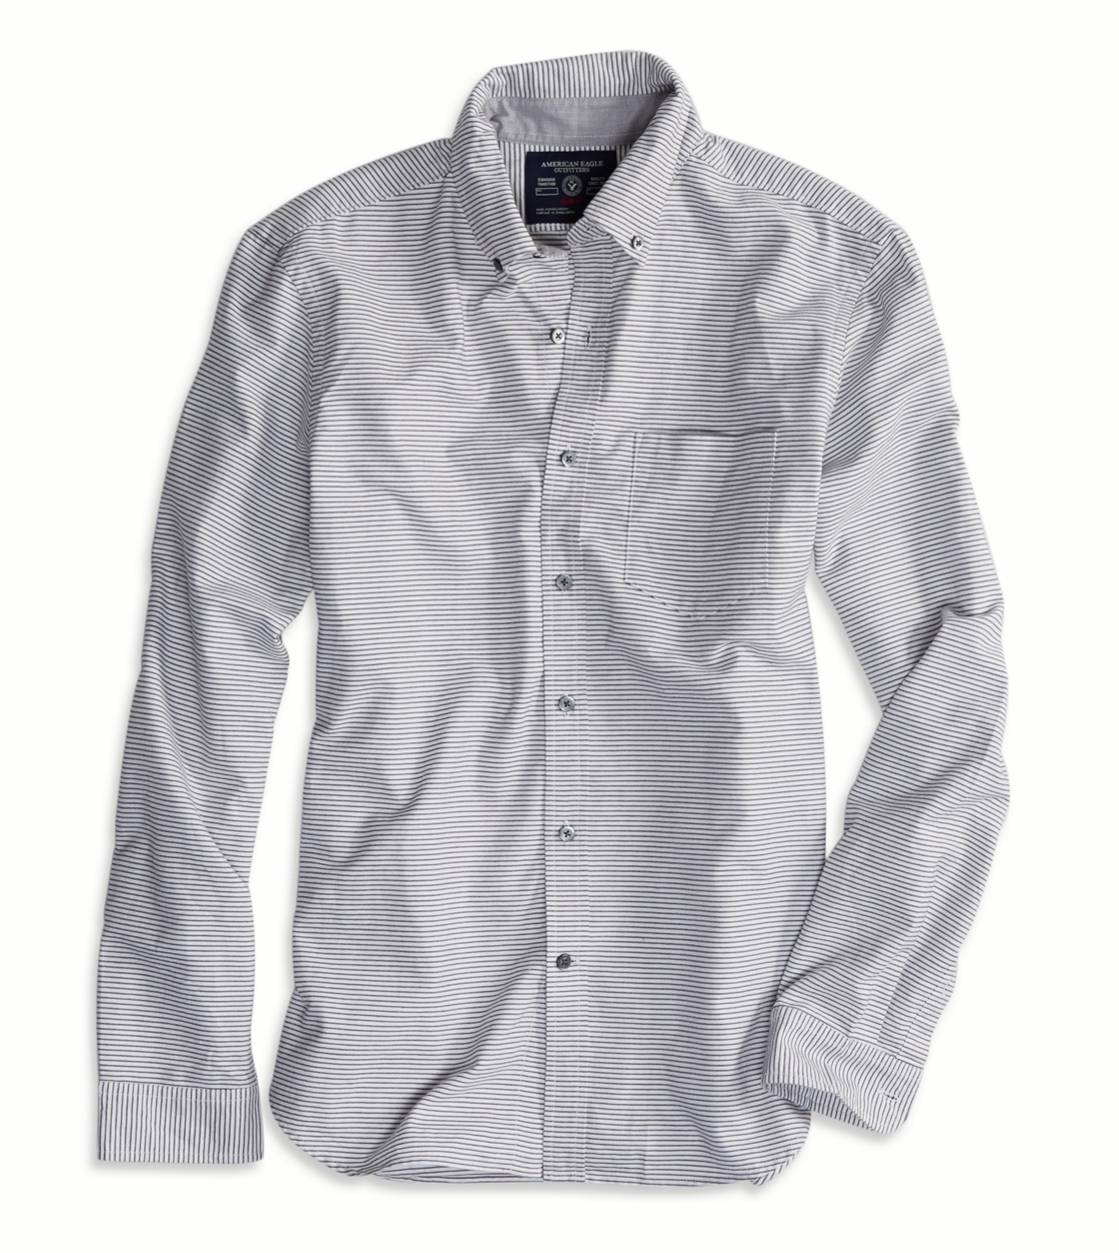 White  AE Striped Oxford Button Down Shirt